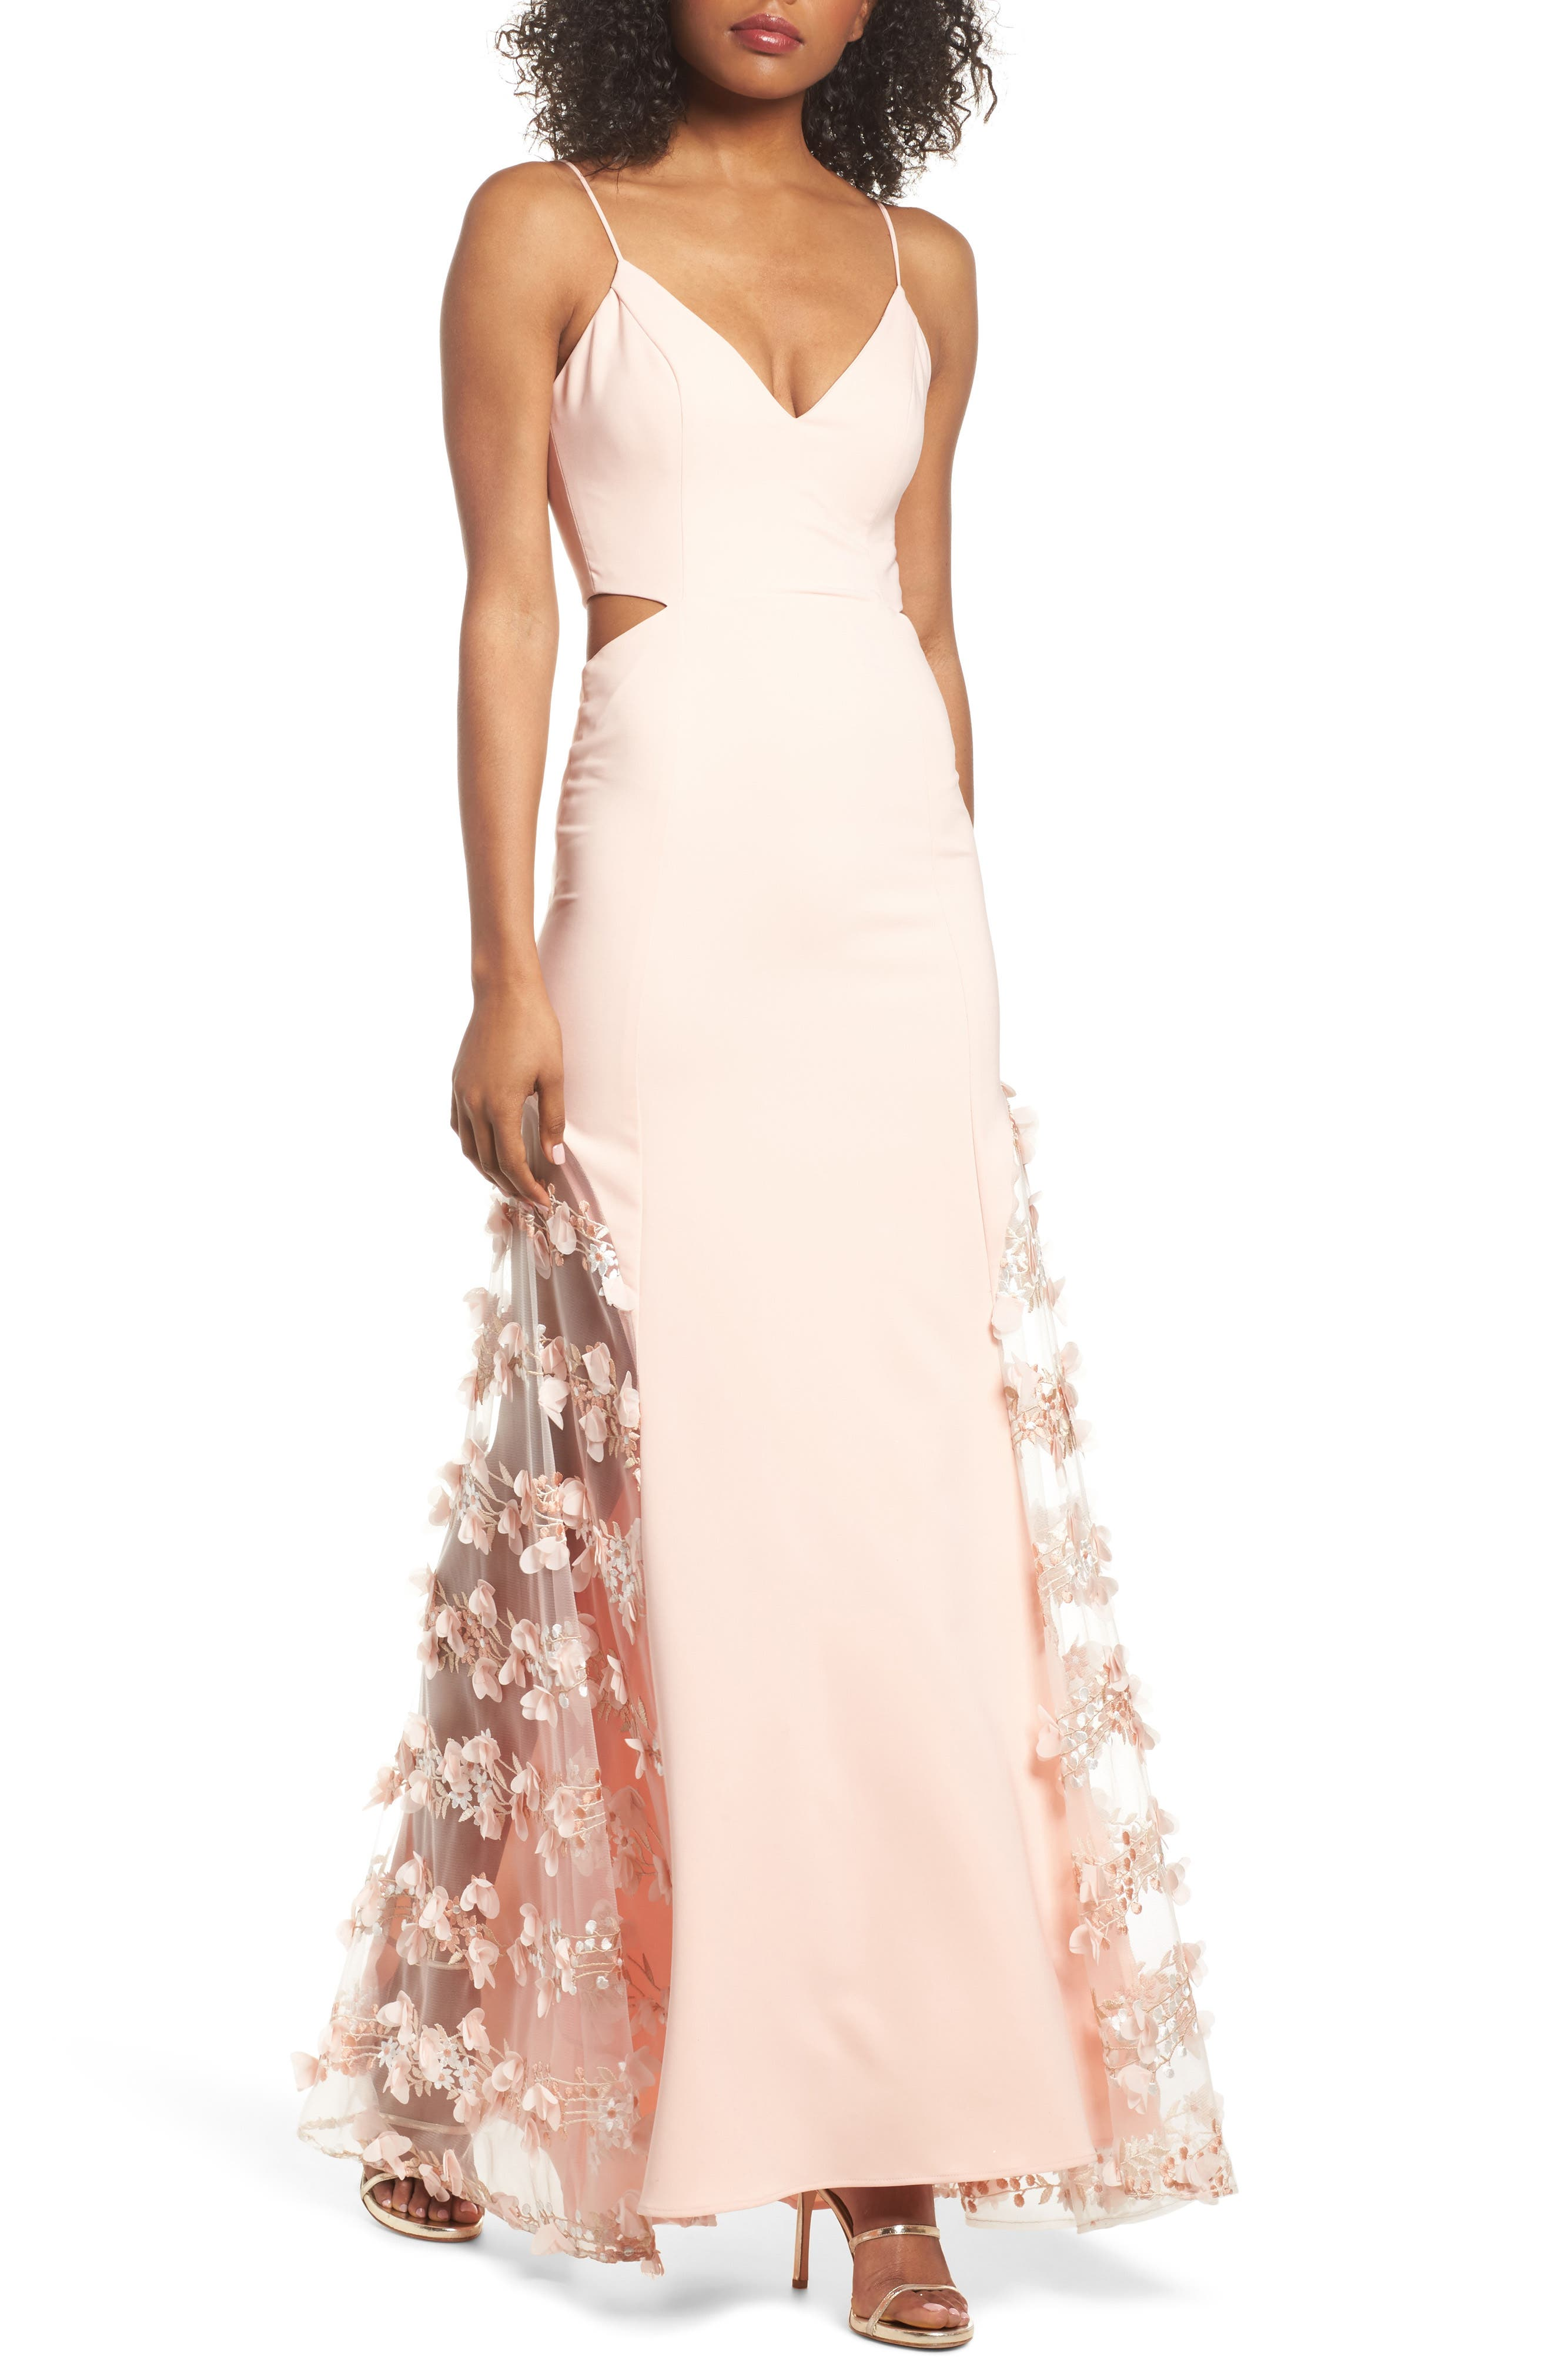 ALEX SHEER PANEL A-LINE GOWN